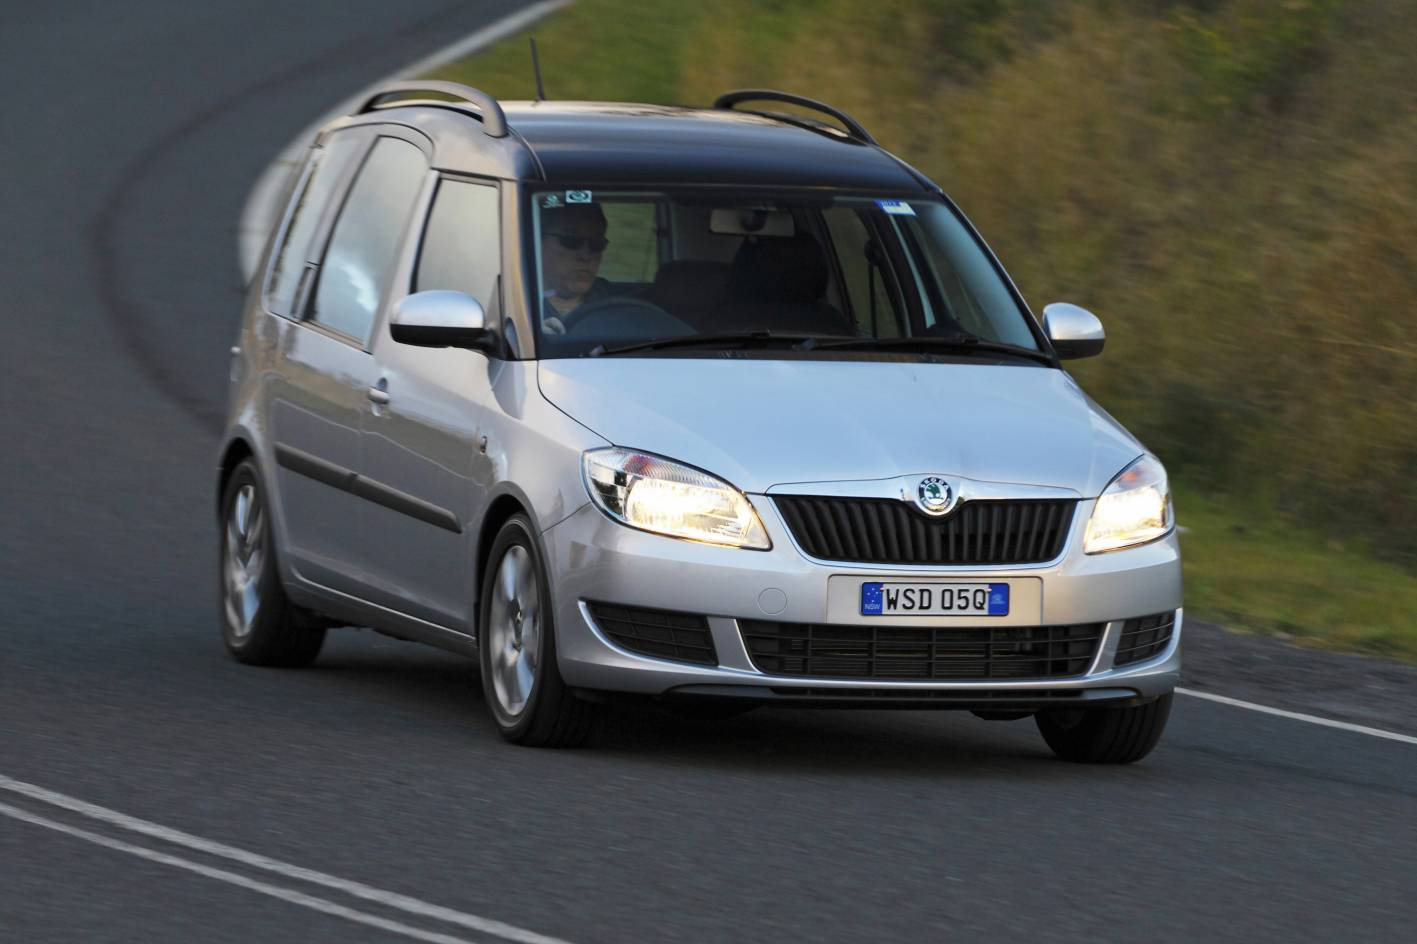 The new Skoda Roomster